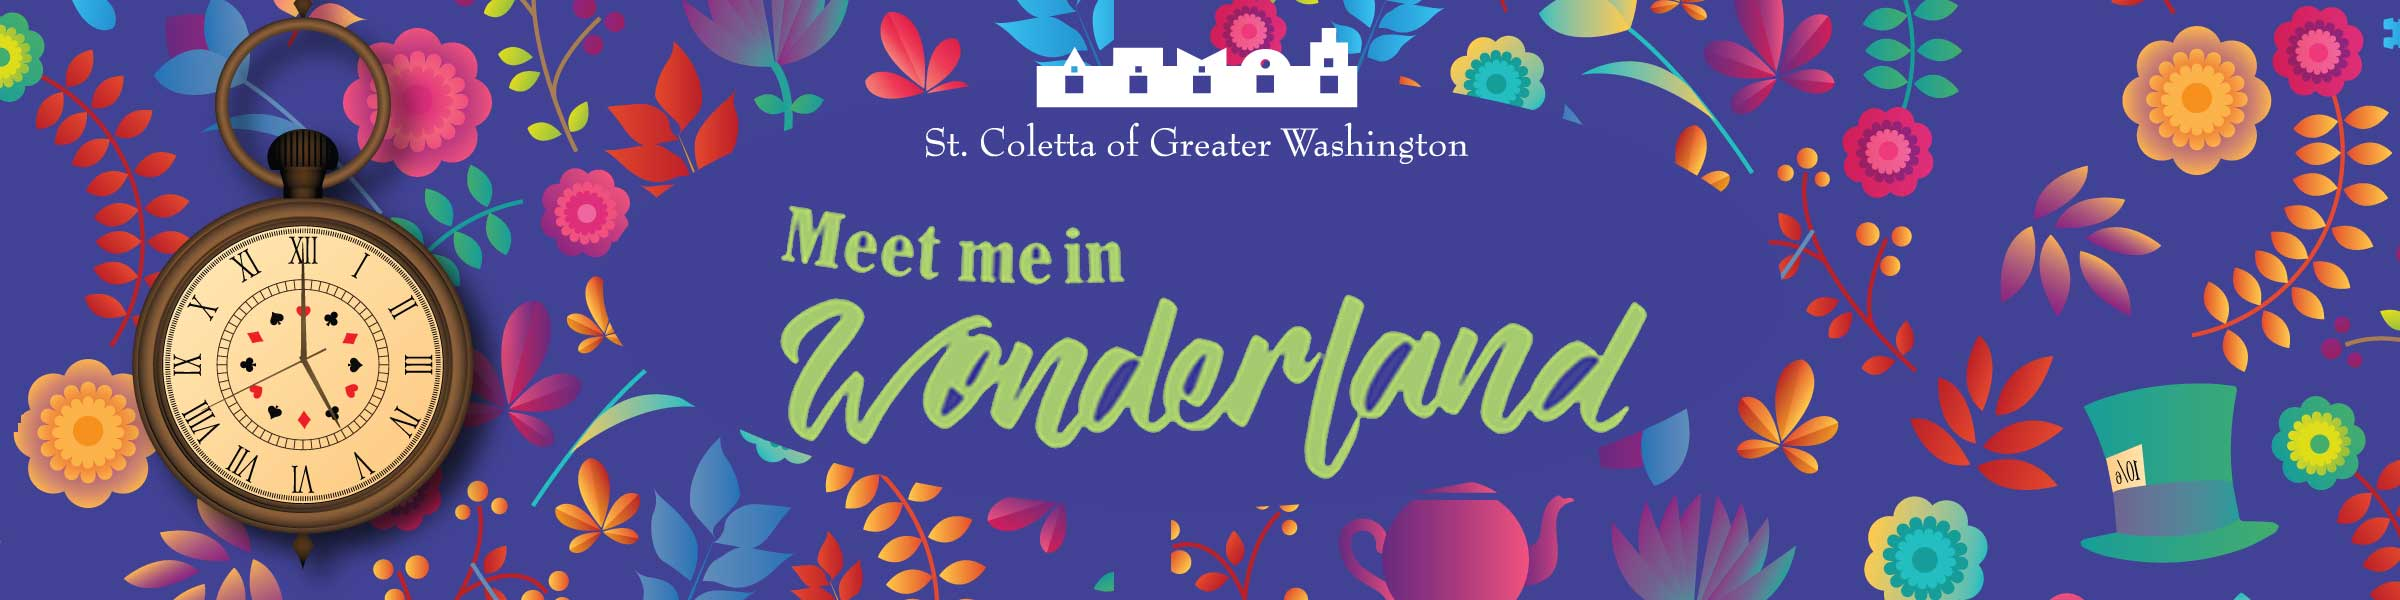 St. Coletta of Greater Washington Gala 2018 - Meet Me in Wonderland